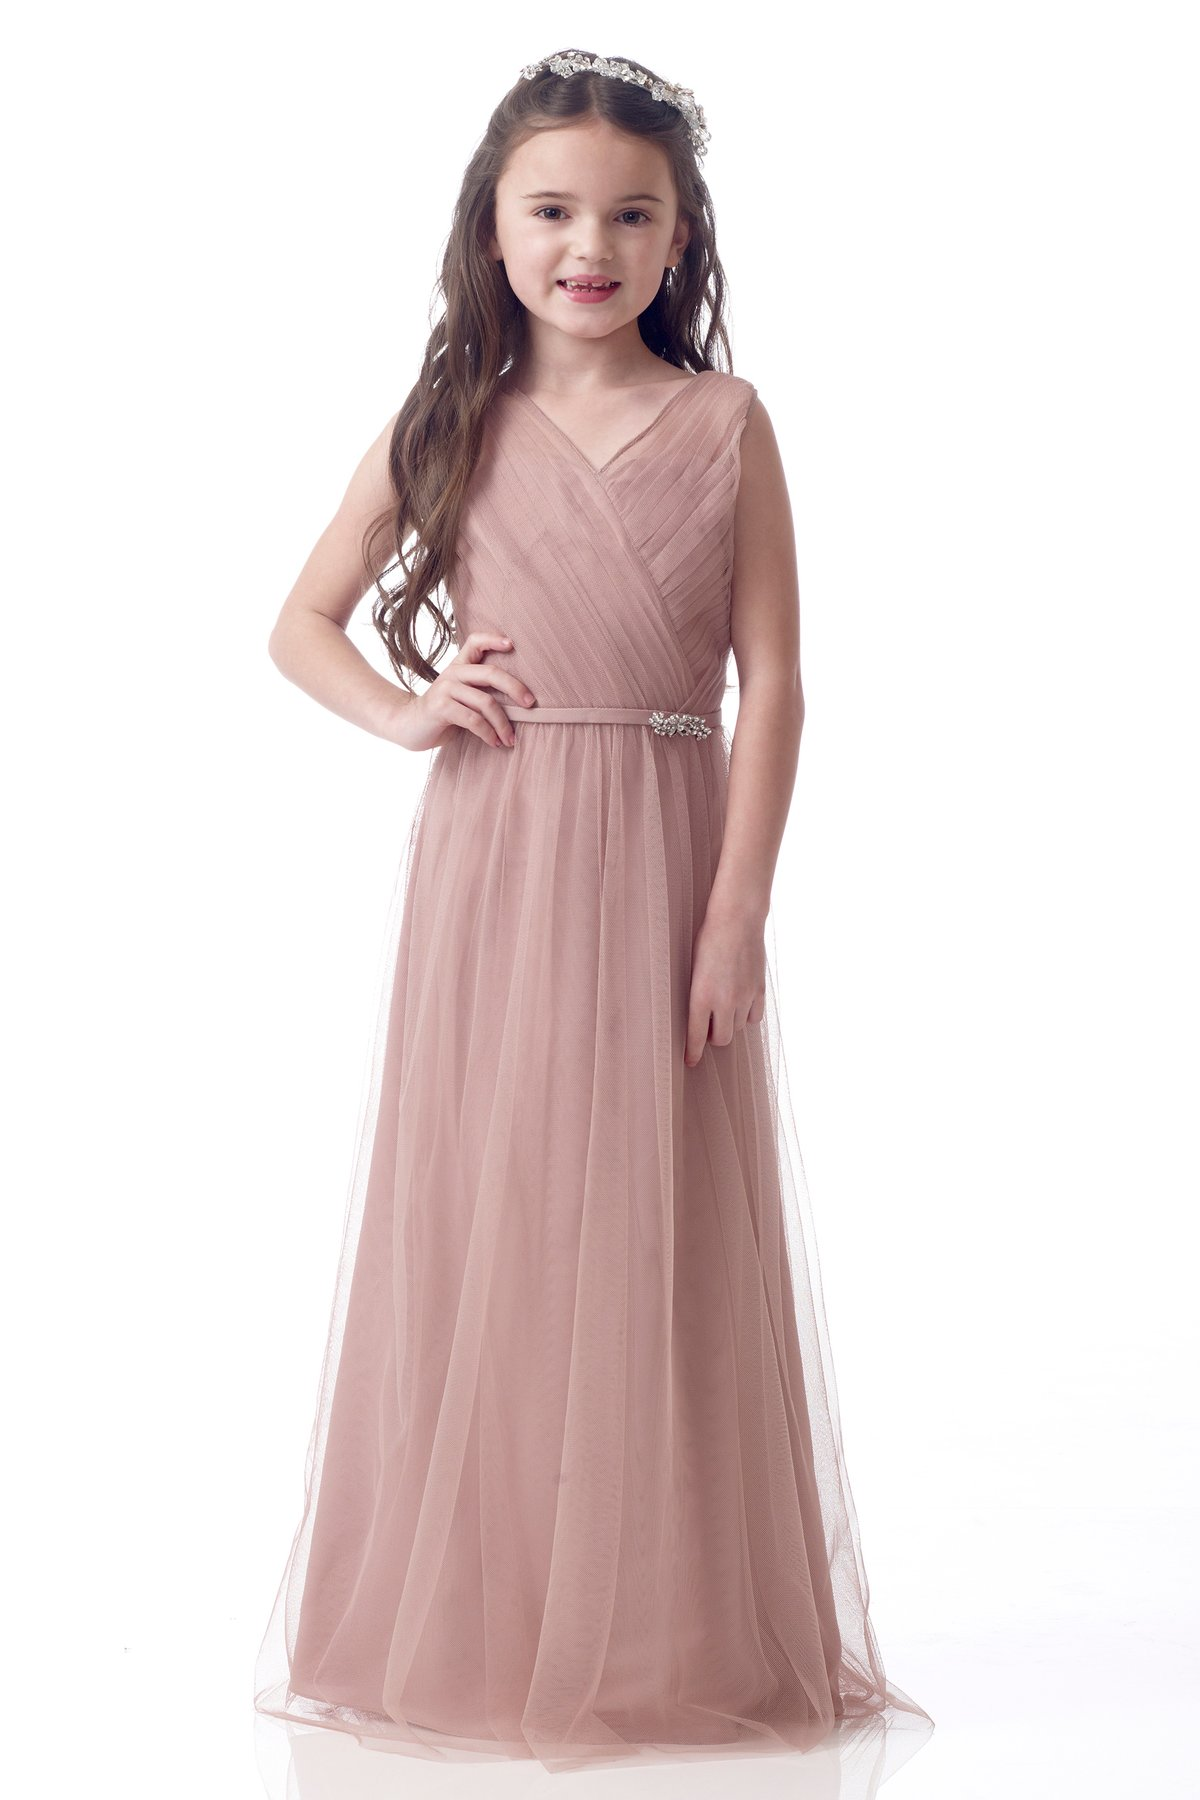 Adorable junior bridesmaid dresses from Alexia Designs - Find Your ...